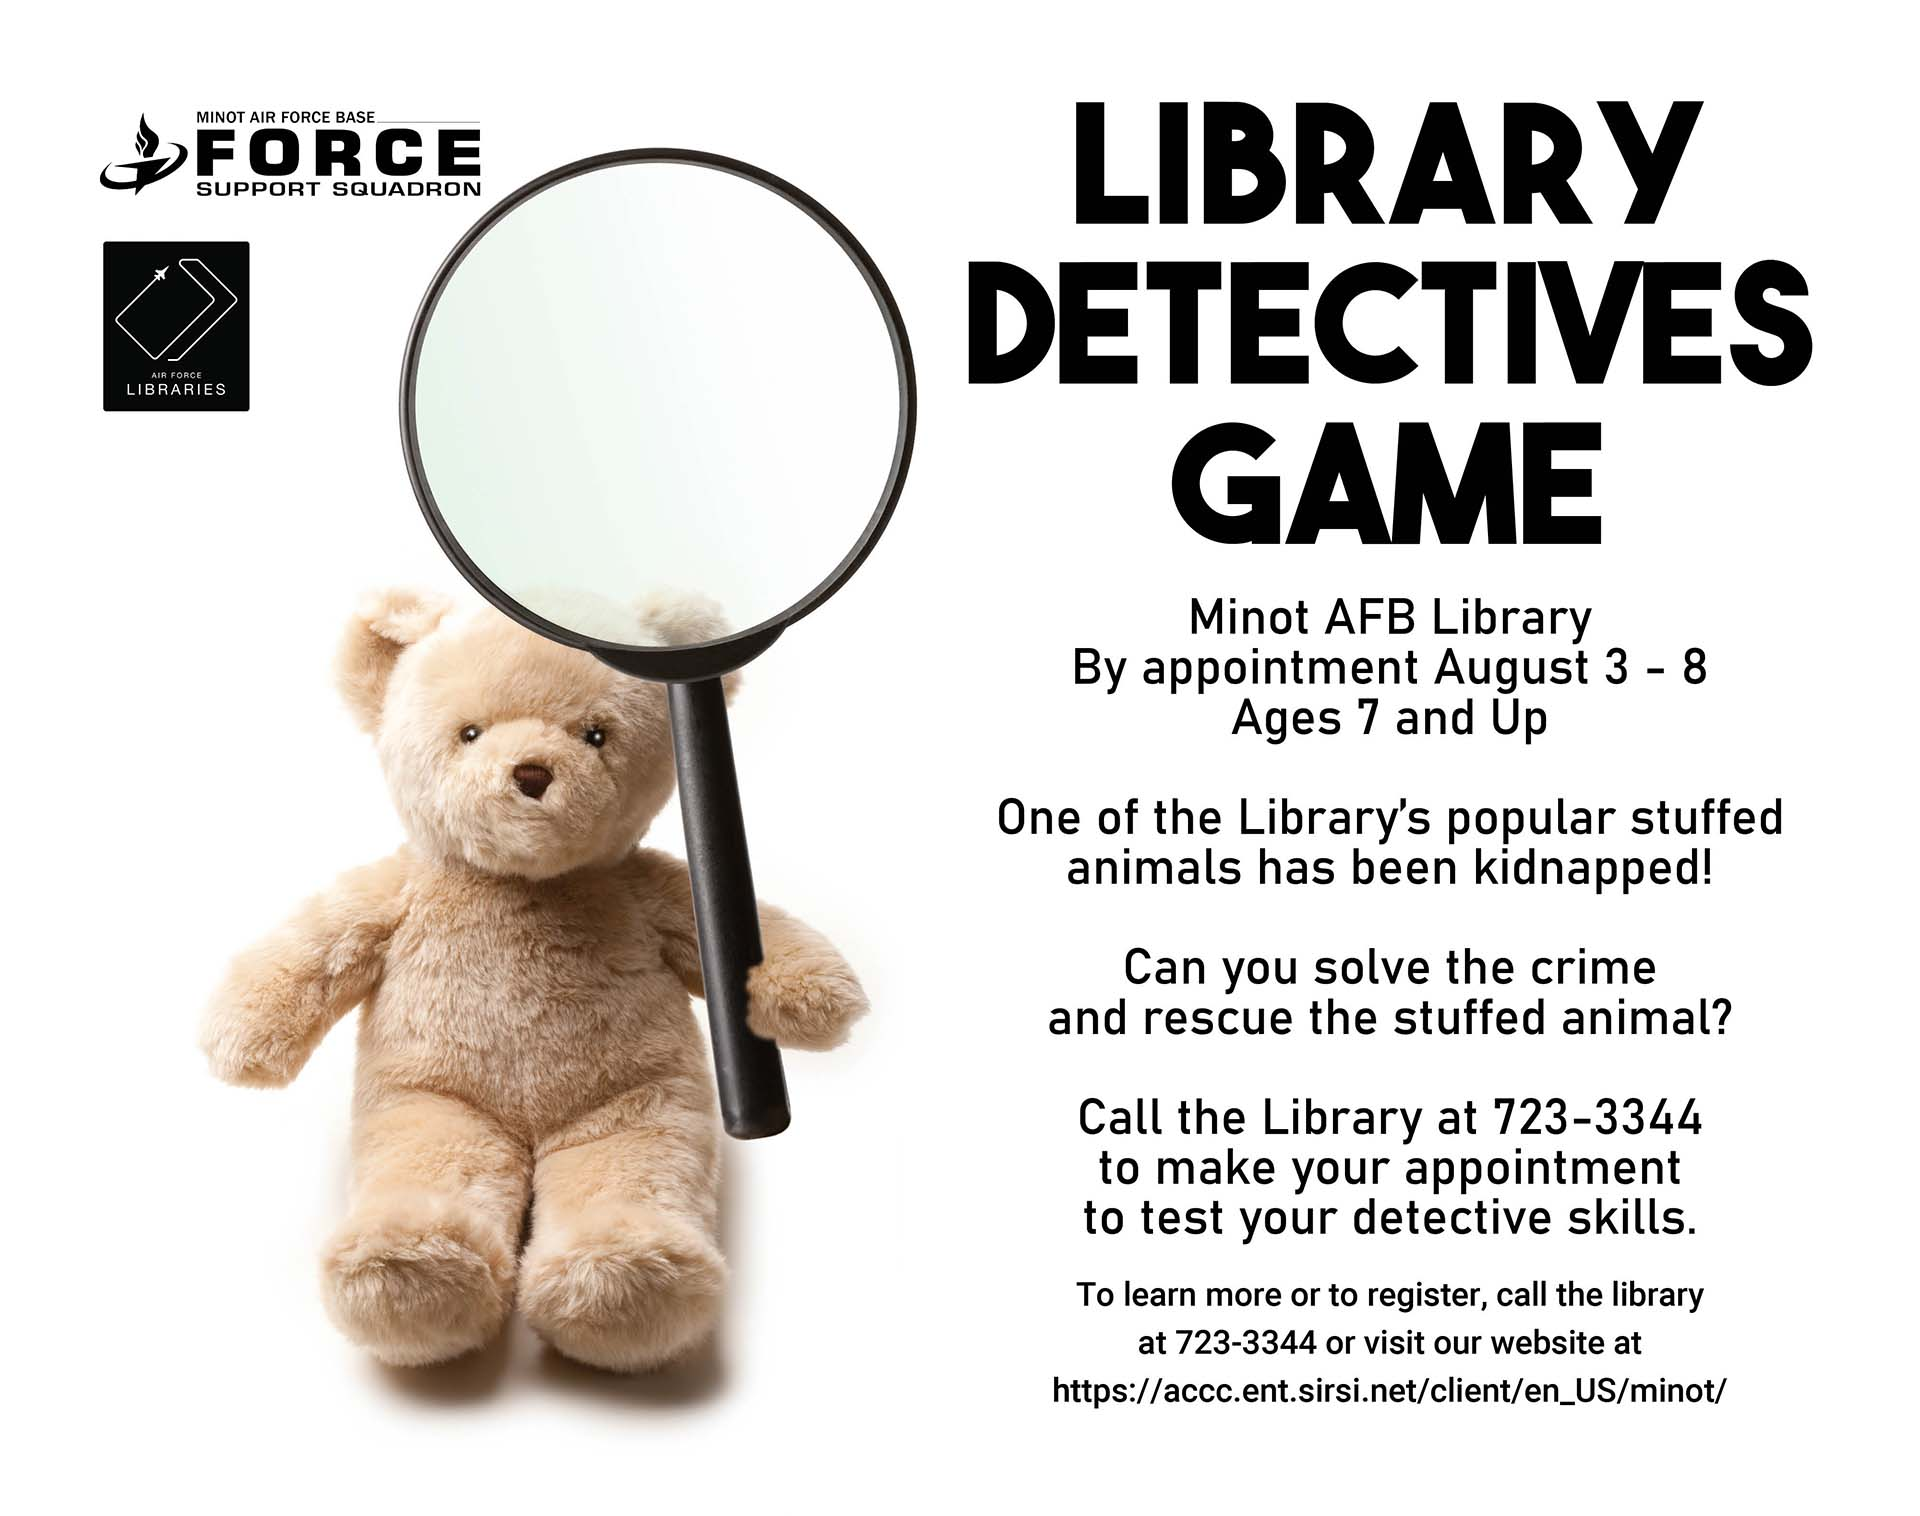 Library Detectives Game